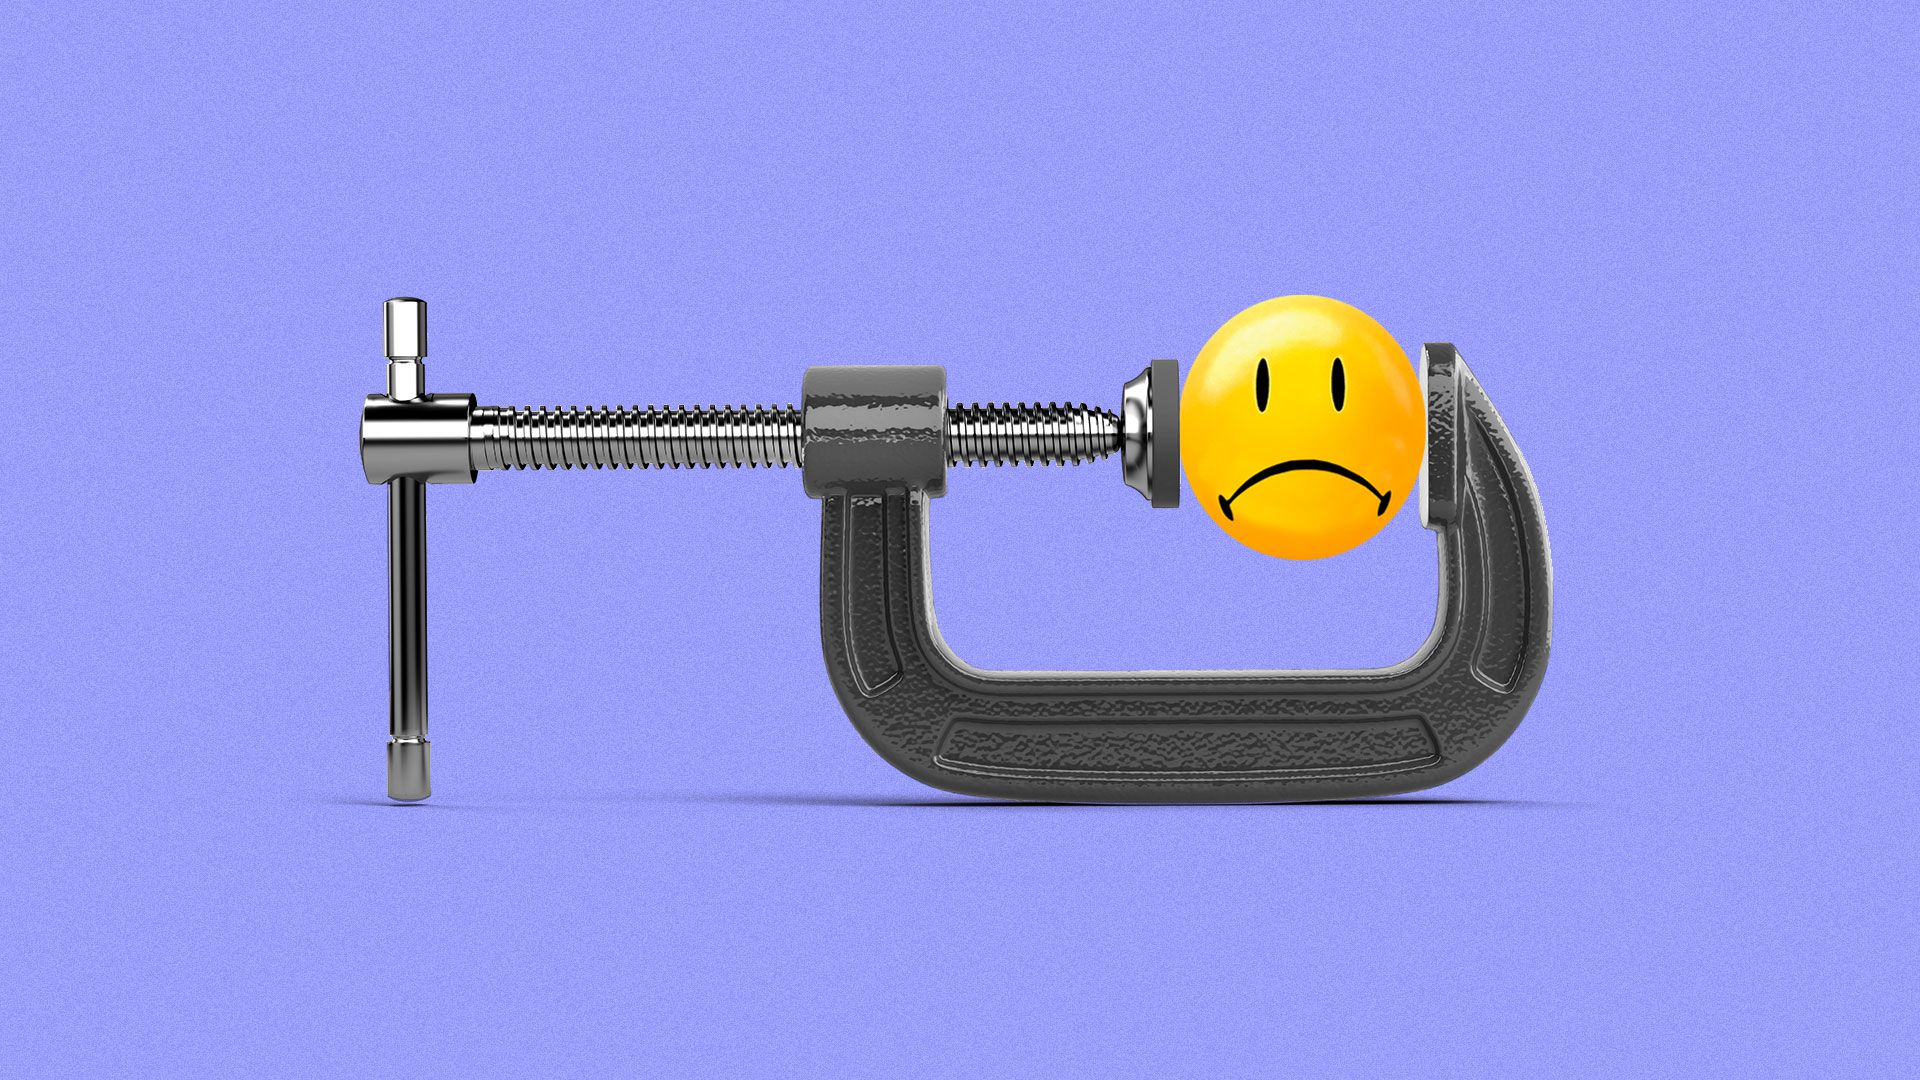 Illustration of a vise grip squeezing a frowning rollback smiley face